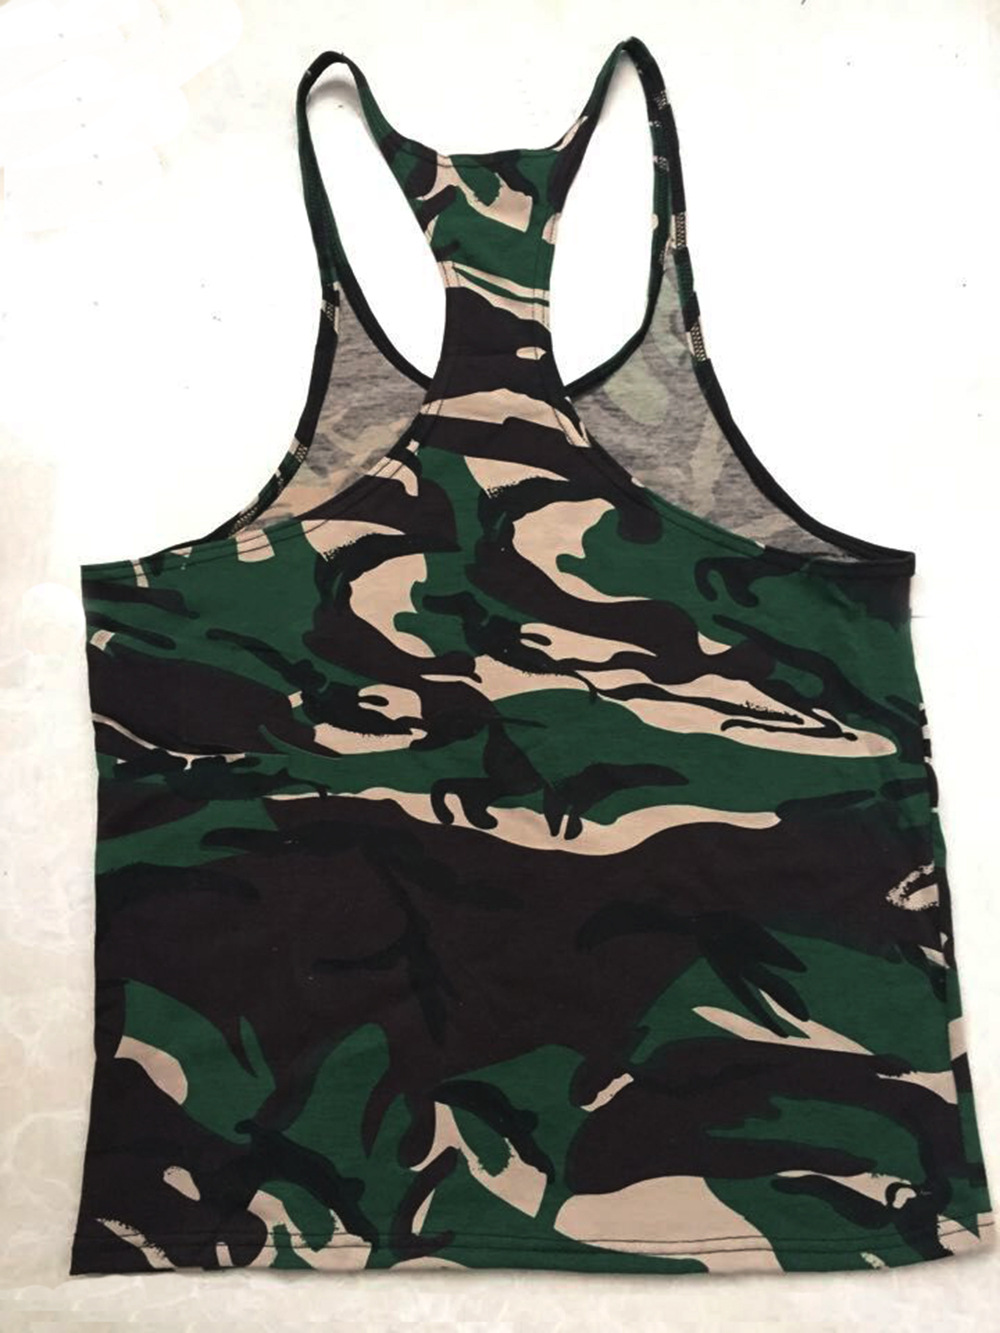 Summer Fitness Bodybuilding Shirt Men Weightlifting Tank Tops Camouflage Stringer Y Back Racer Vest Gyms Clothing Casual Clothes